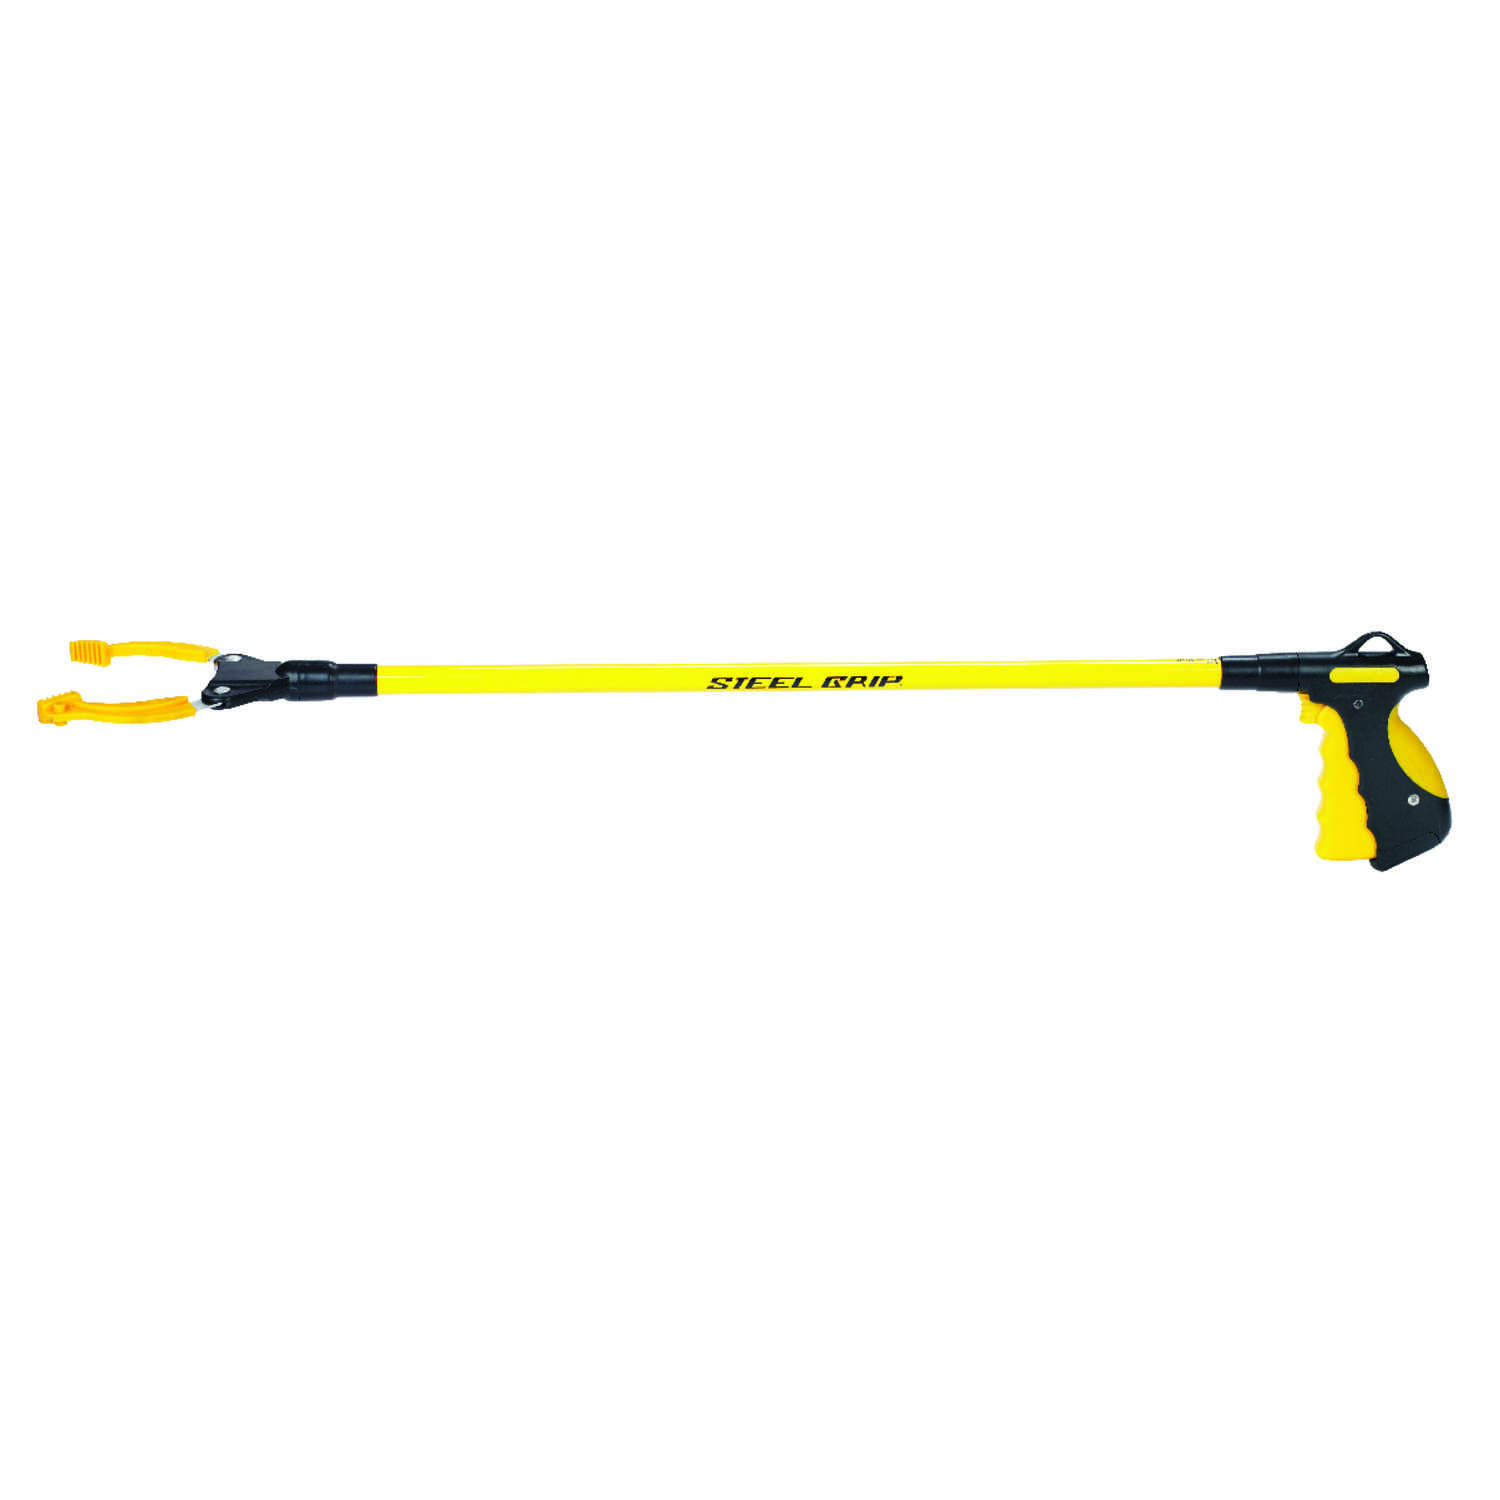 Steel Grip  36 in. Mechanical Pick-Up Tool  Aluminum  5 lb. pull Yellow